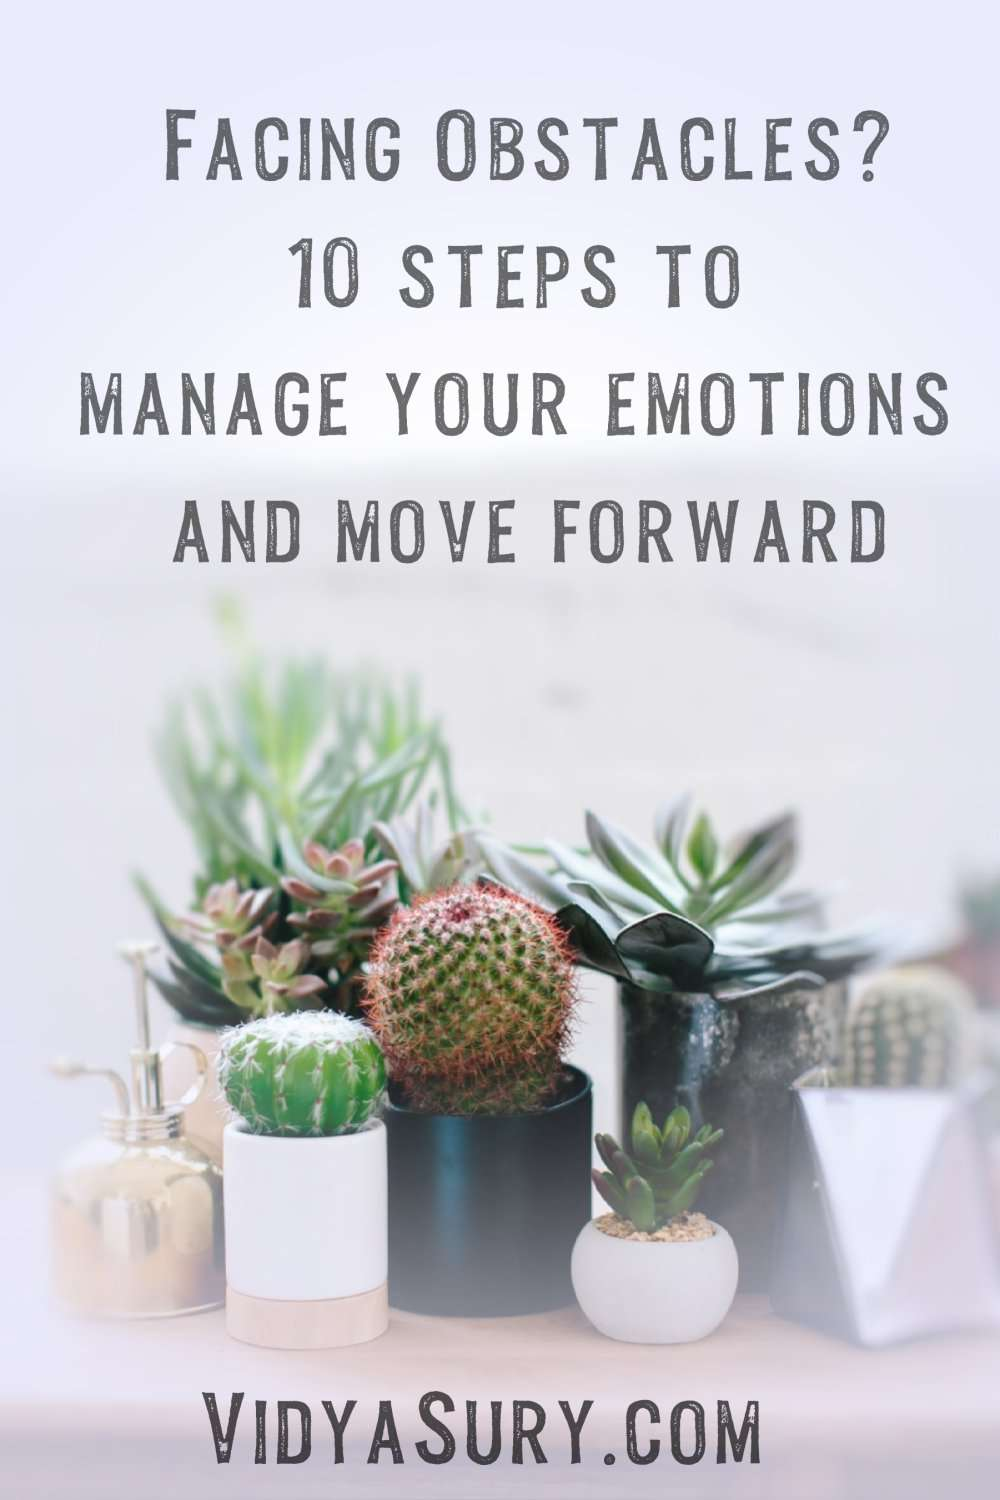 Facing obstacles 10 steps to manage your emotions